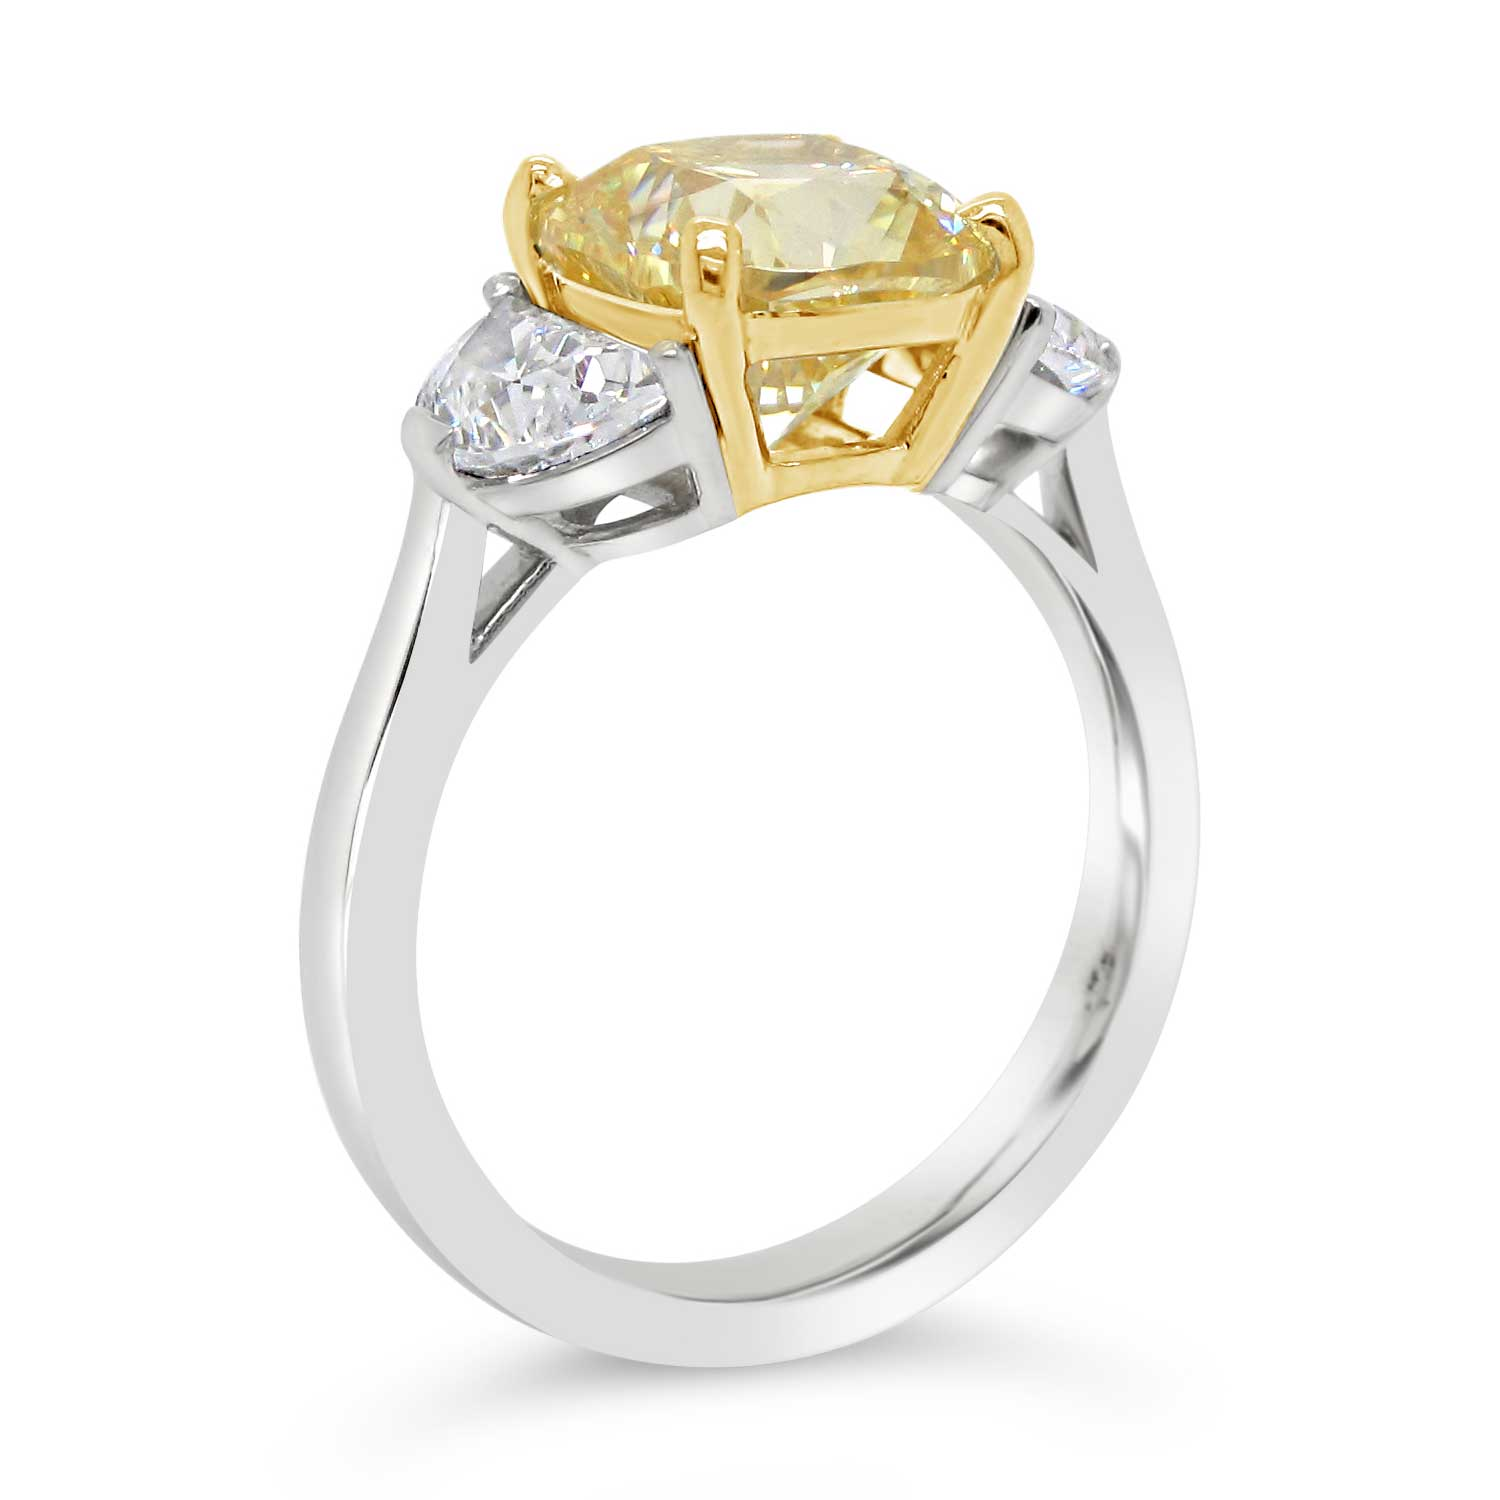 3ct yellow cushion cut center stone with two half-moon cut side stones set in 18k yellow gold and platinum